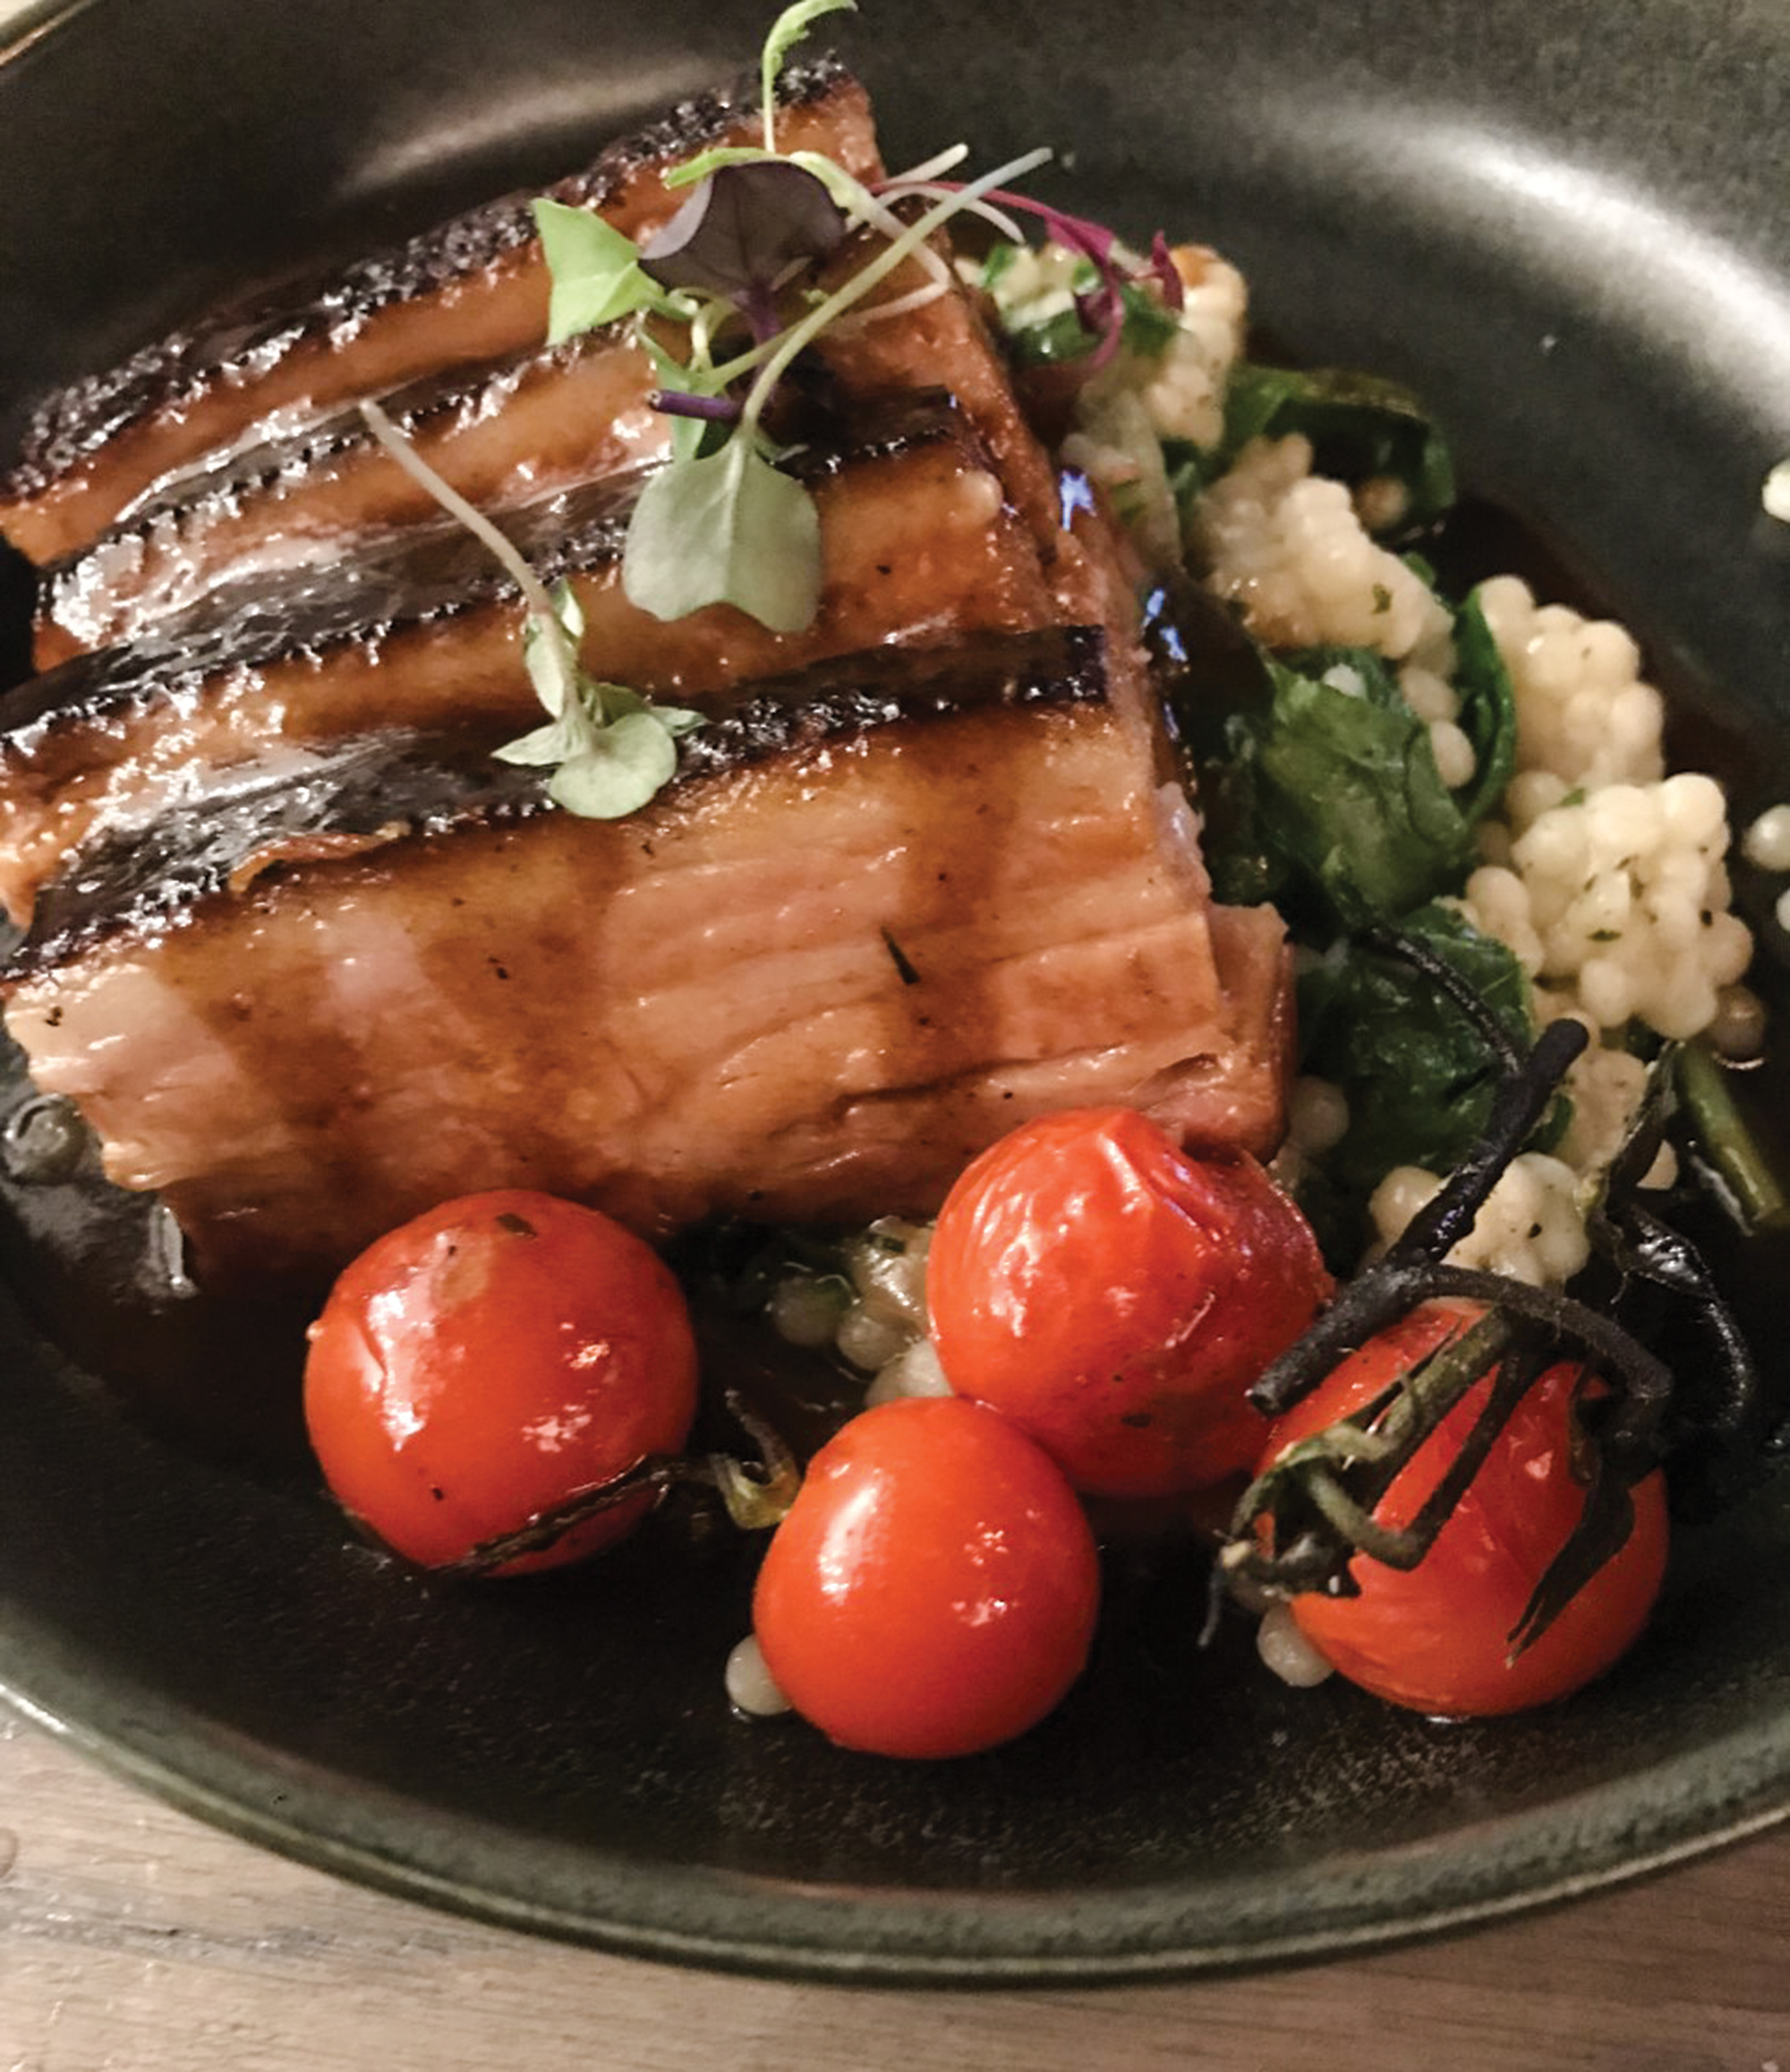 the pork belly at Fable & Spirit; Photo by Craig Outhier